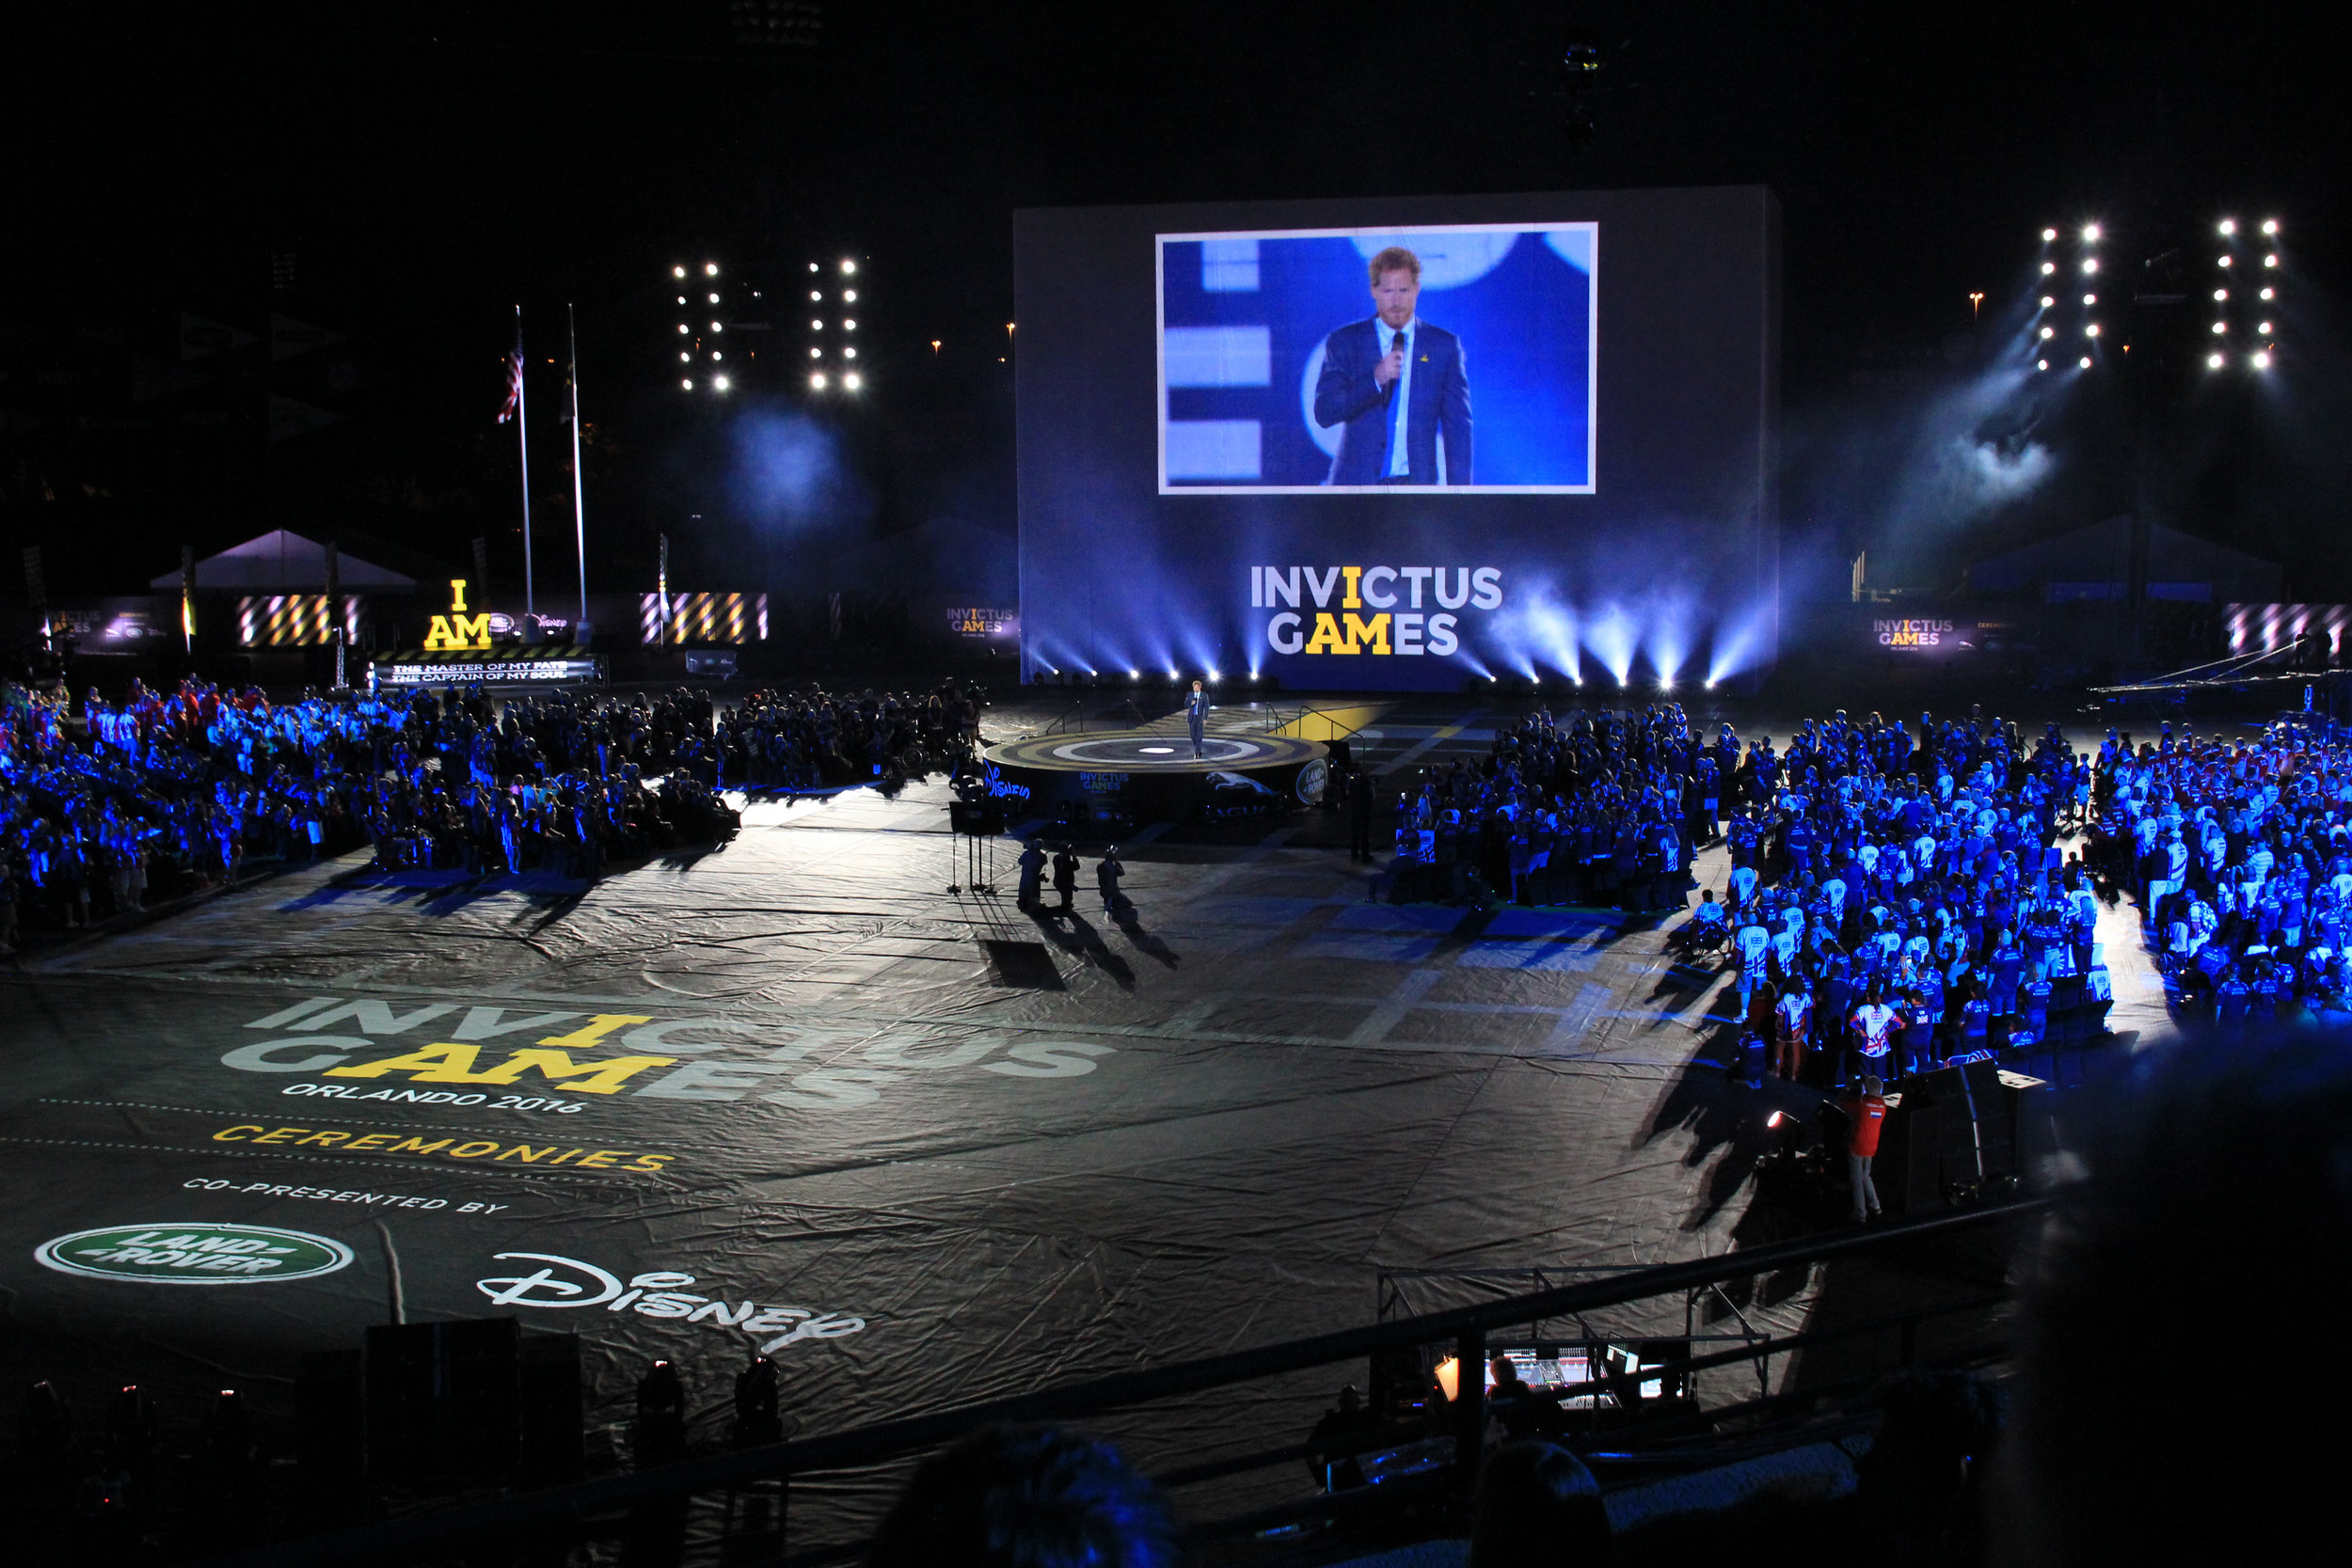 Invictus 2016 - Prince Harry opening ceremony.jpg